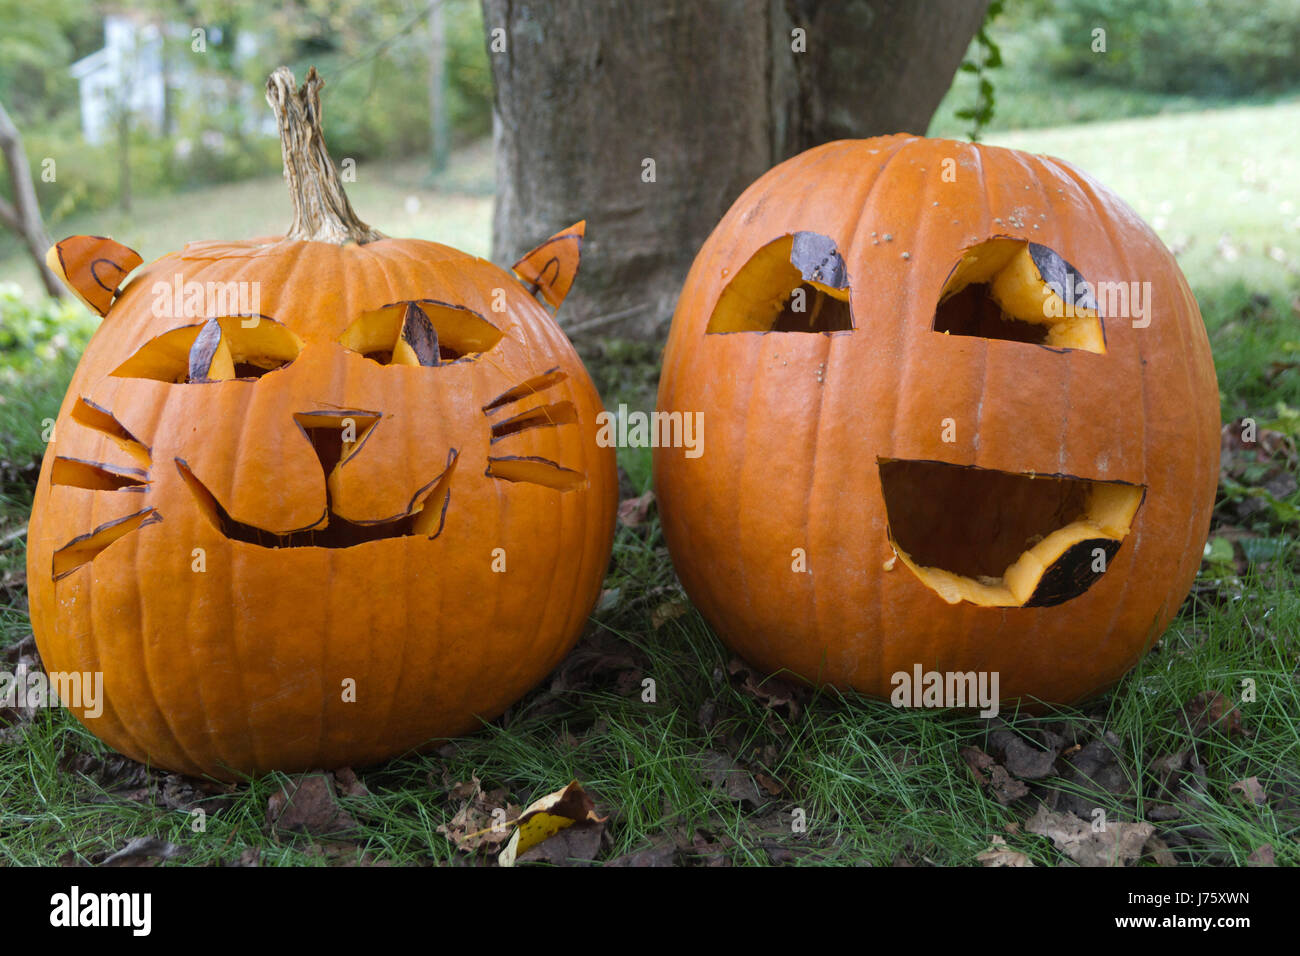 Two colorfully personable Halloween Jack-o-lanterns with happy looking faces sit side by side in the autumn, leaf - Stock Image